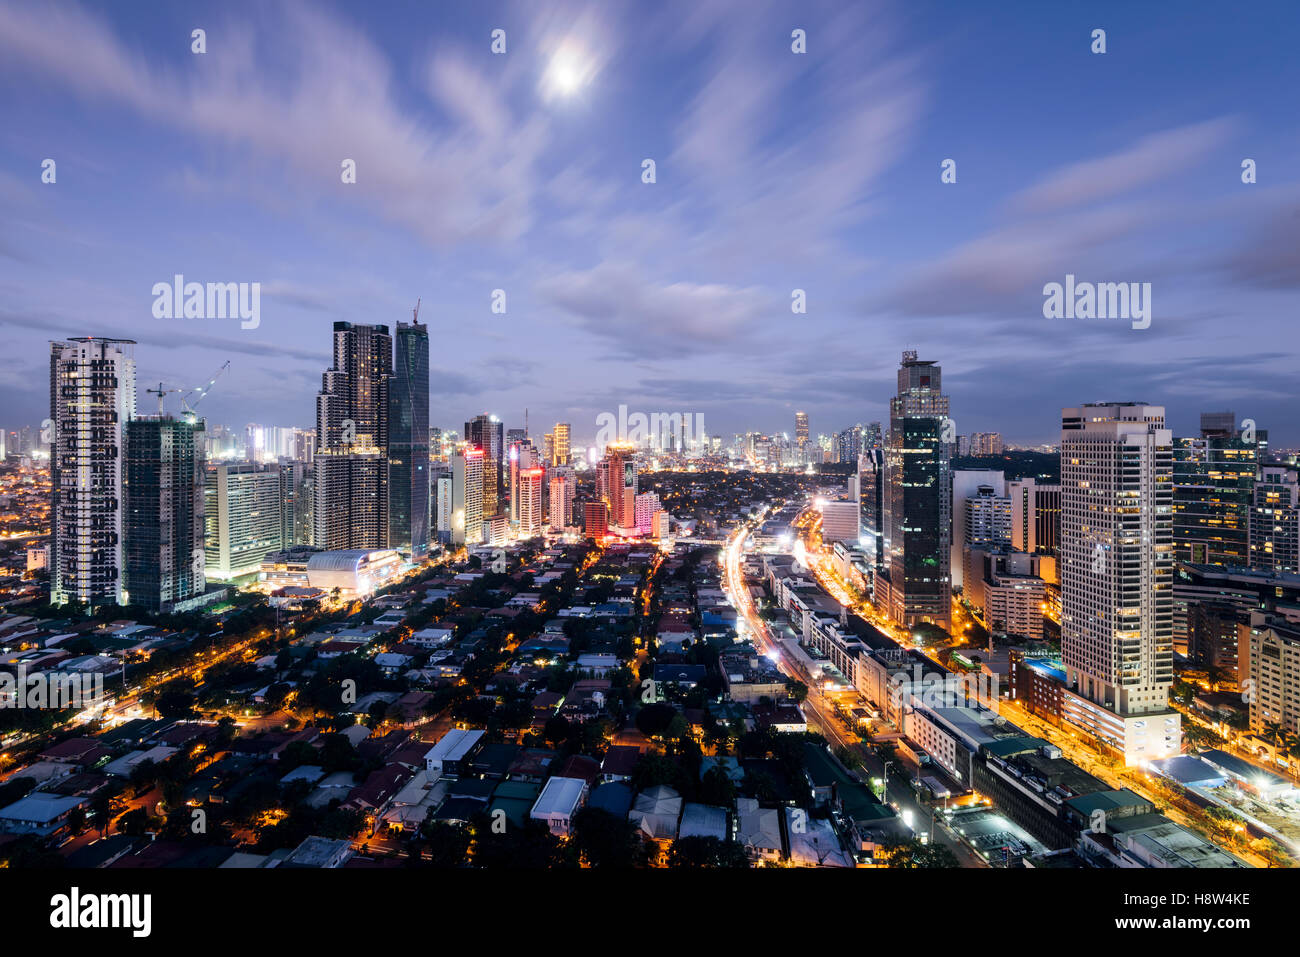 Makati skyline at night makati is a city in the philippines makati is a city in the philippines metro manila region and the countrys financial hub sciox Image collections